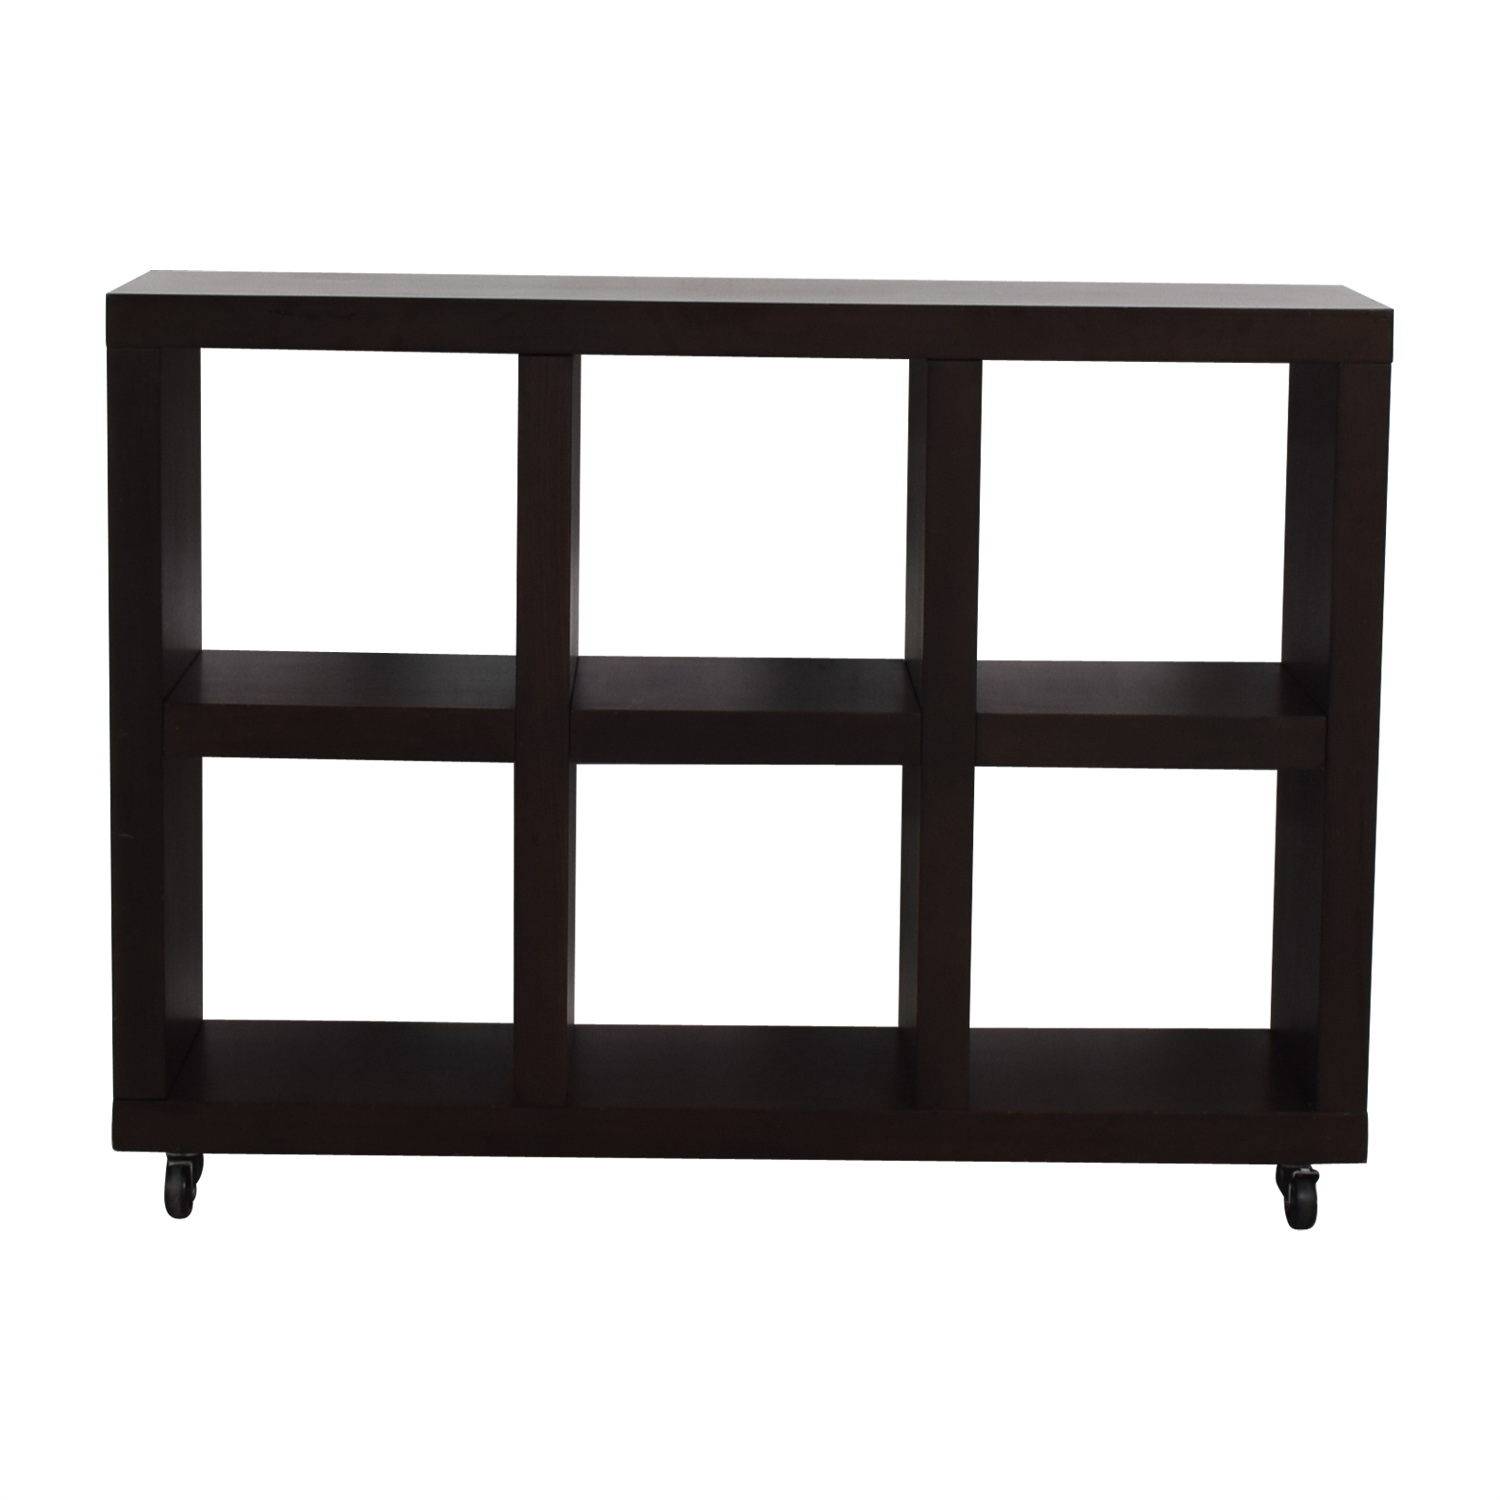 West Elm West Elm Wood Bookshelf discount